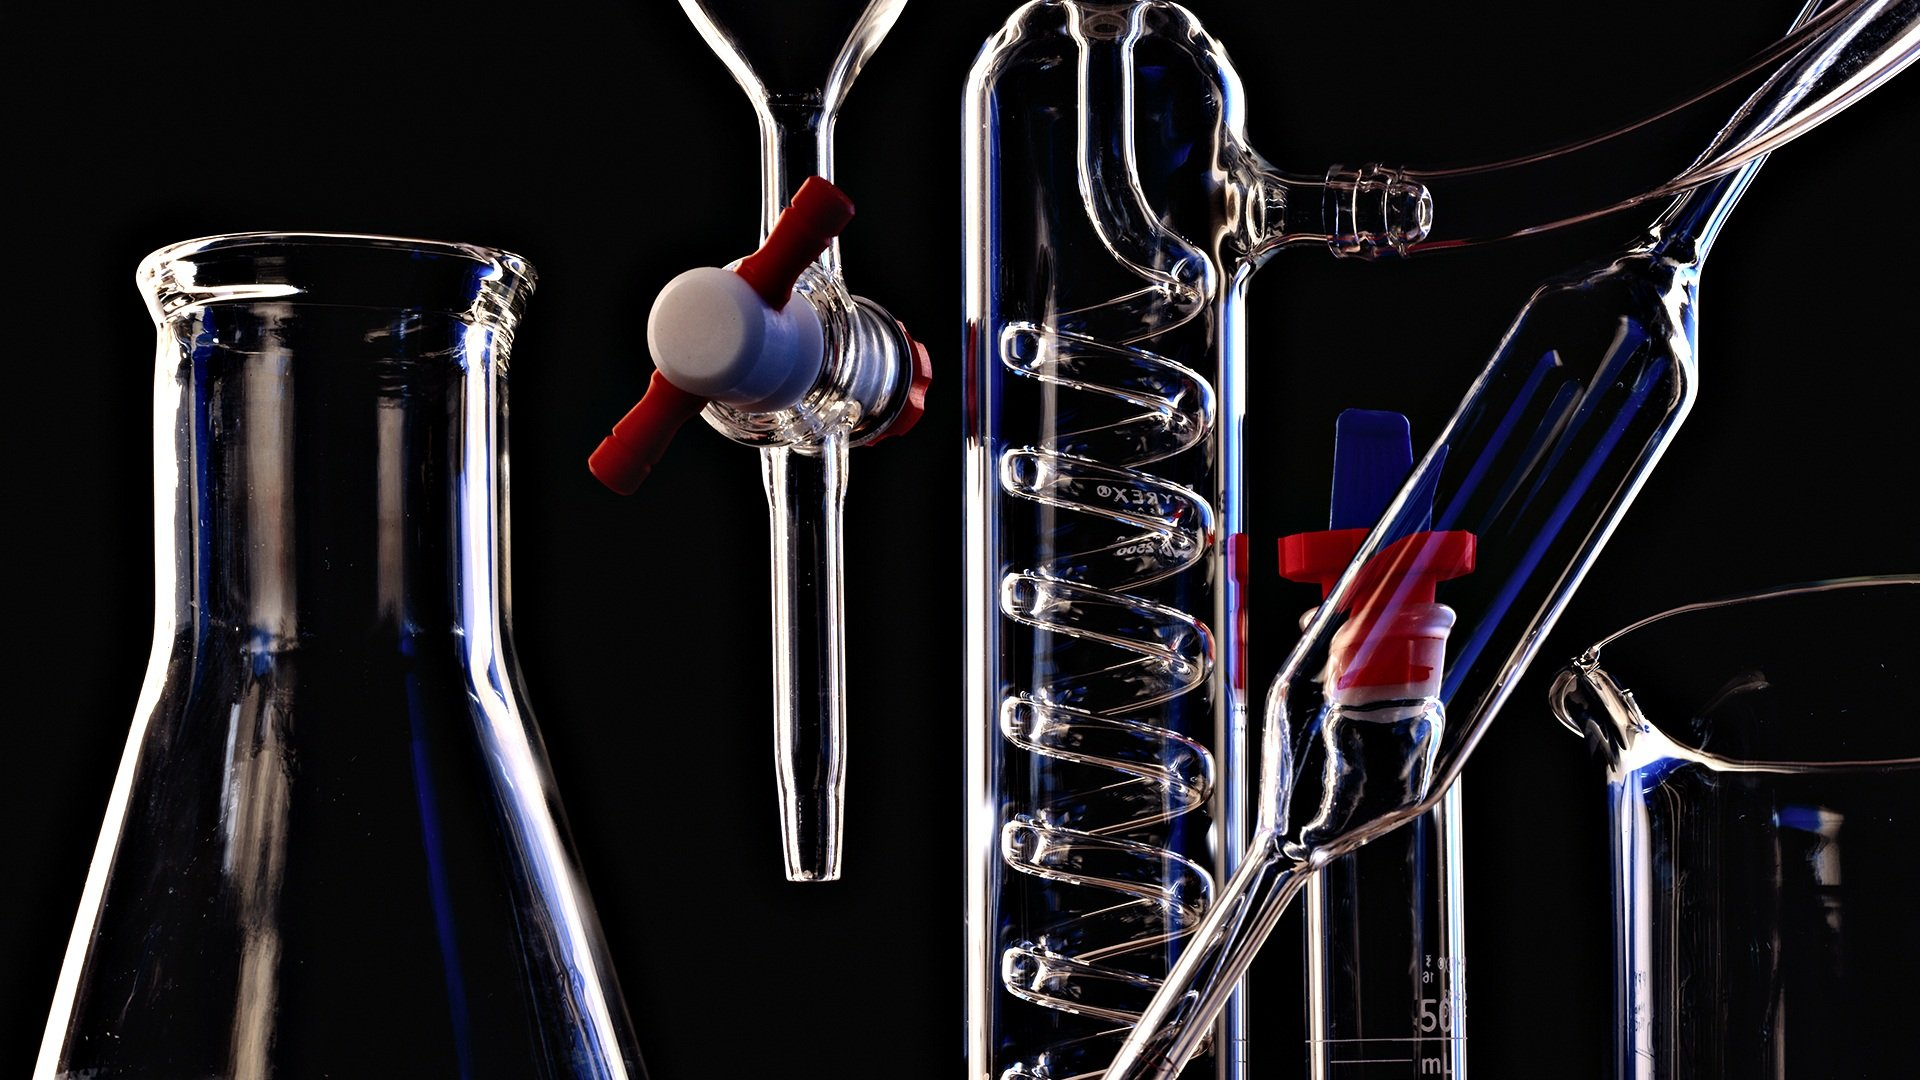 Chemistry 4k Wallpapers For Your Desktop Or Mobile Screen Free And